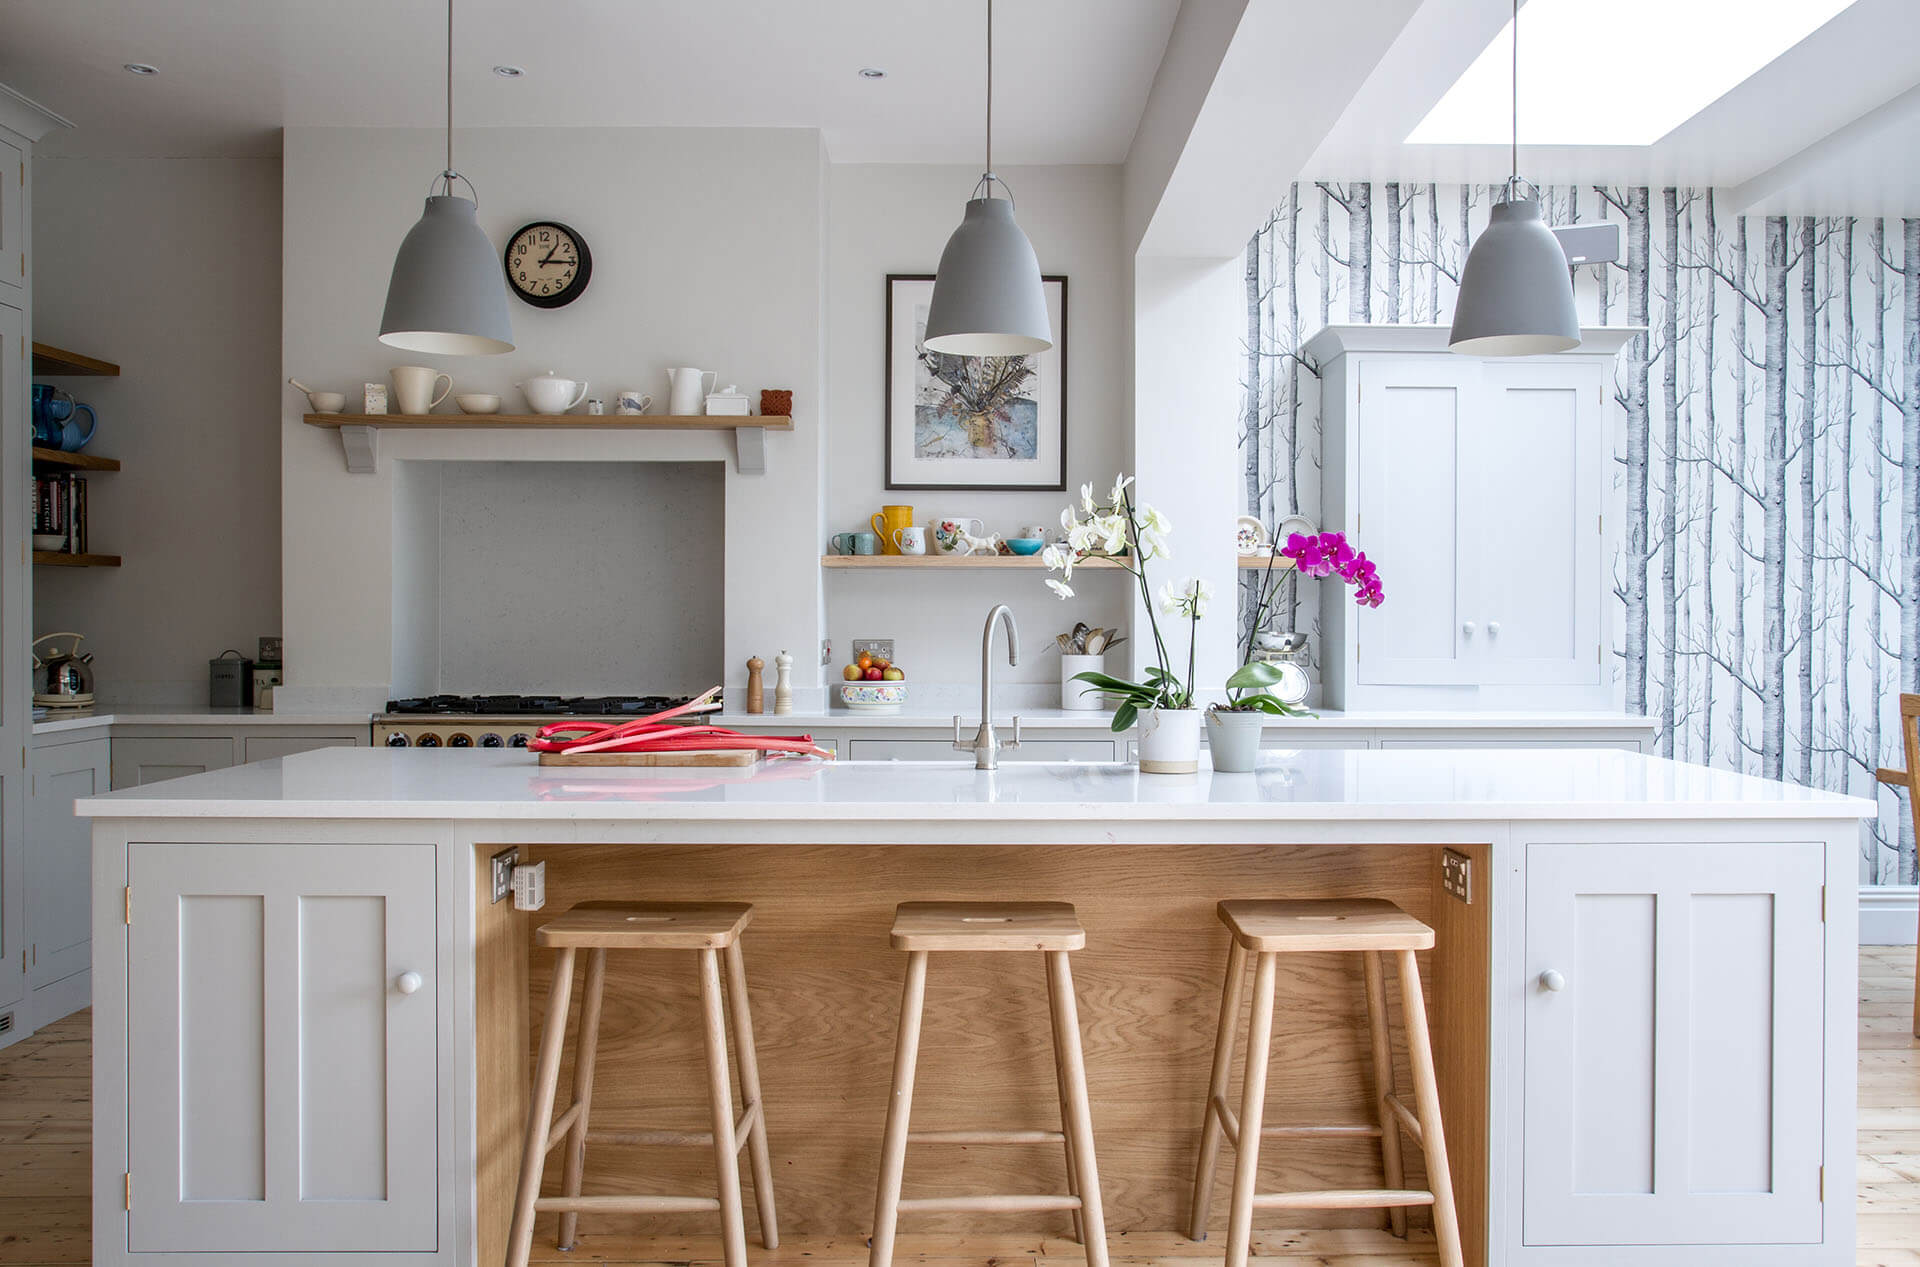 Scandinavian Woodland Kitchen with large kitchen island and breakfast bar stools